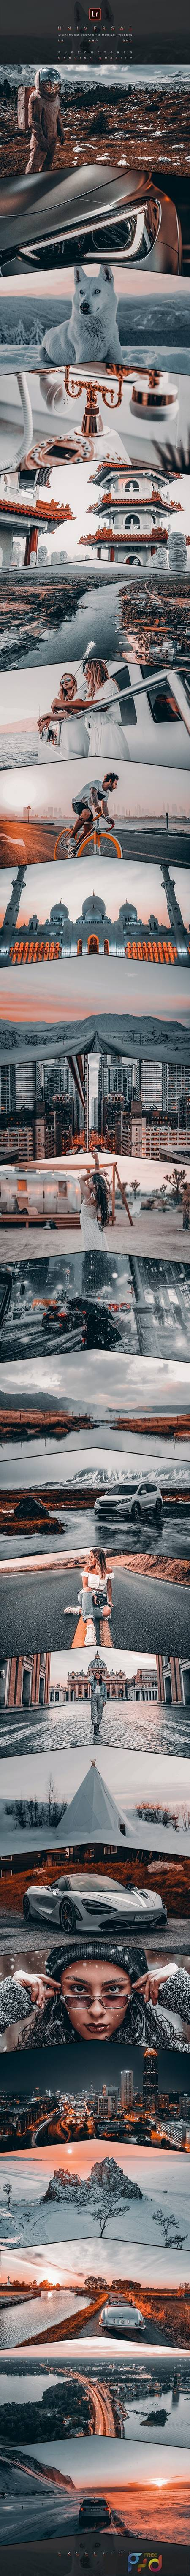 UNIVERSAL Lightroom Presets For Mobile & Desktop 28379847 1